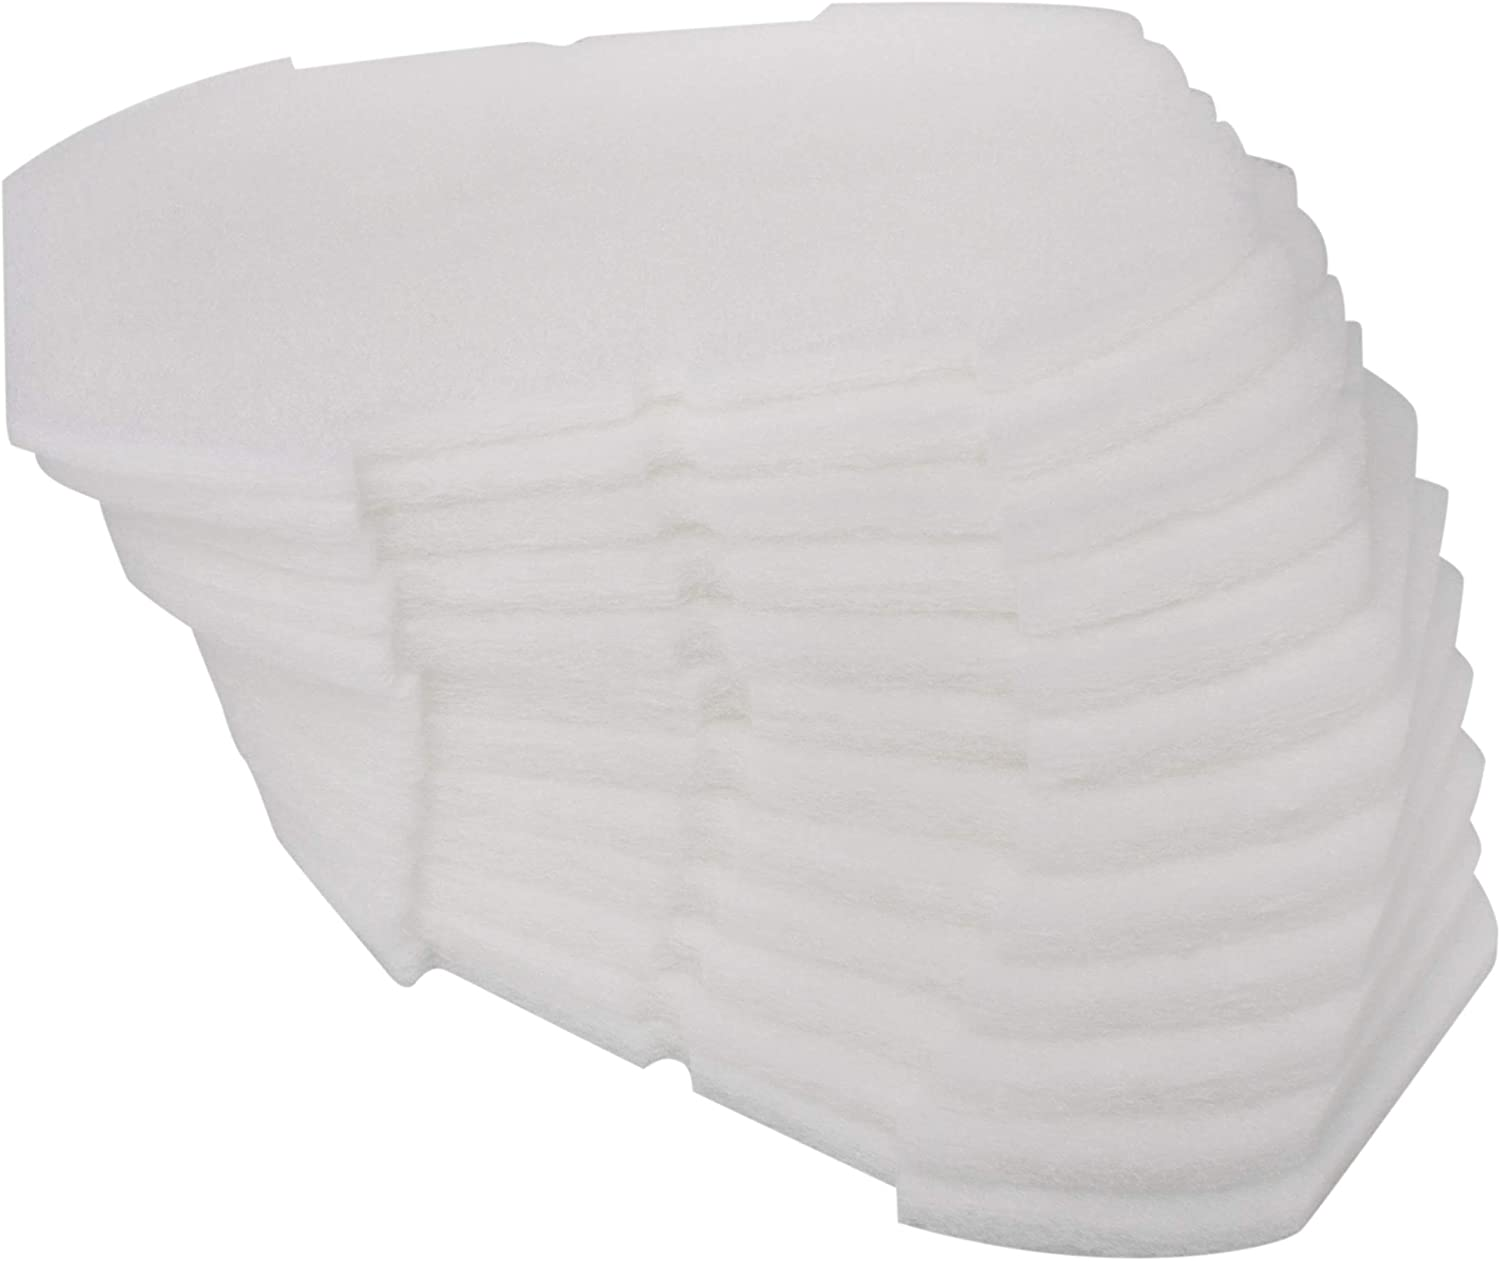 LTWHOME Polymer Wool Pads Fit for Blagdon Affinity Inpond All-in-One Filter (Pack of 12)